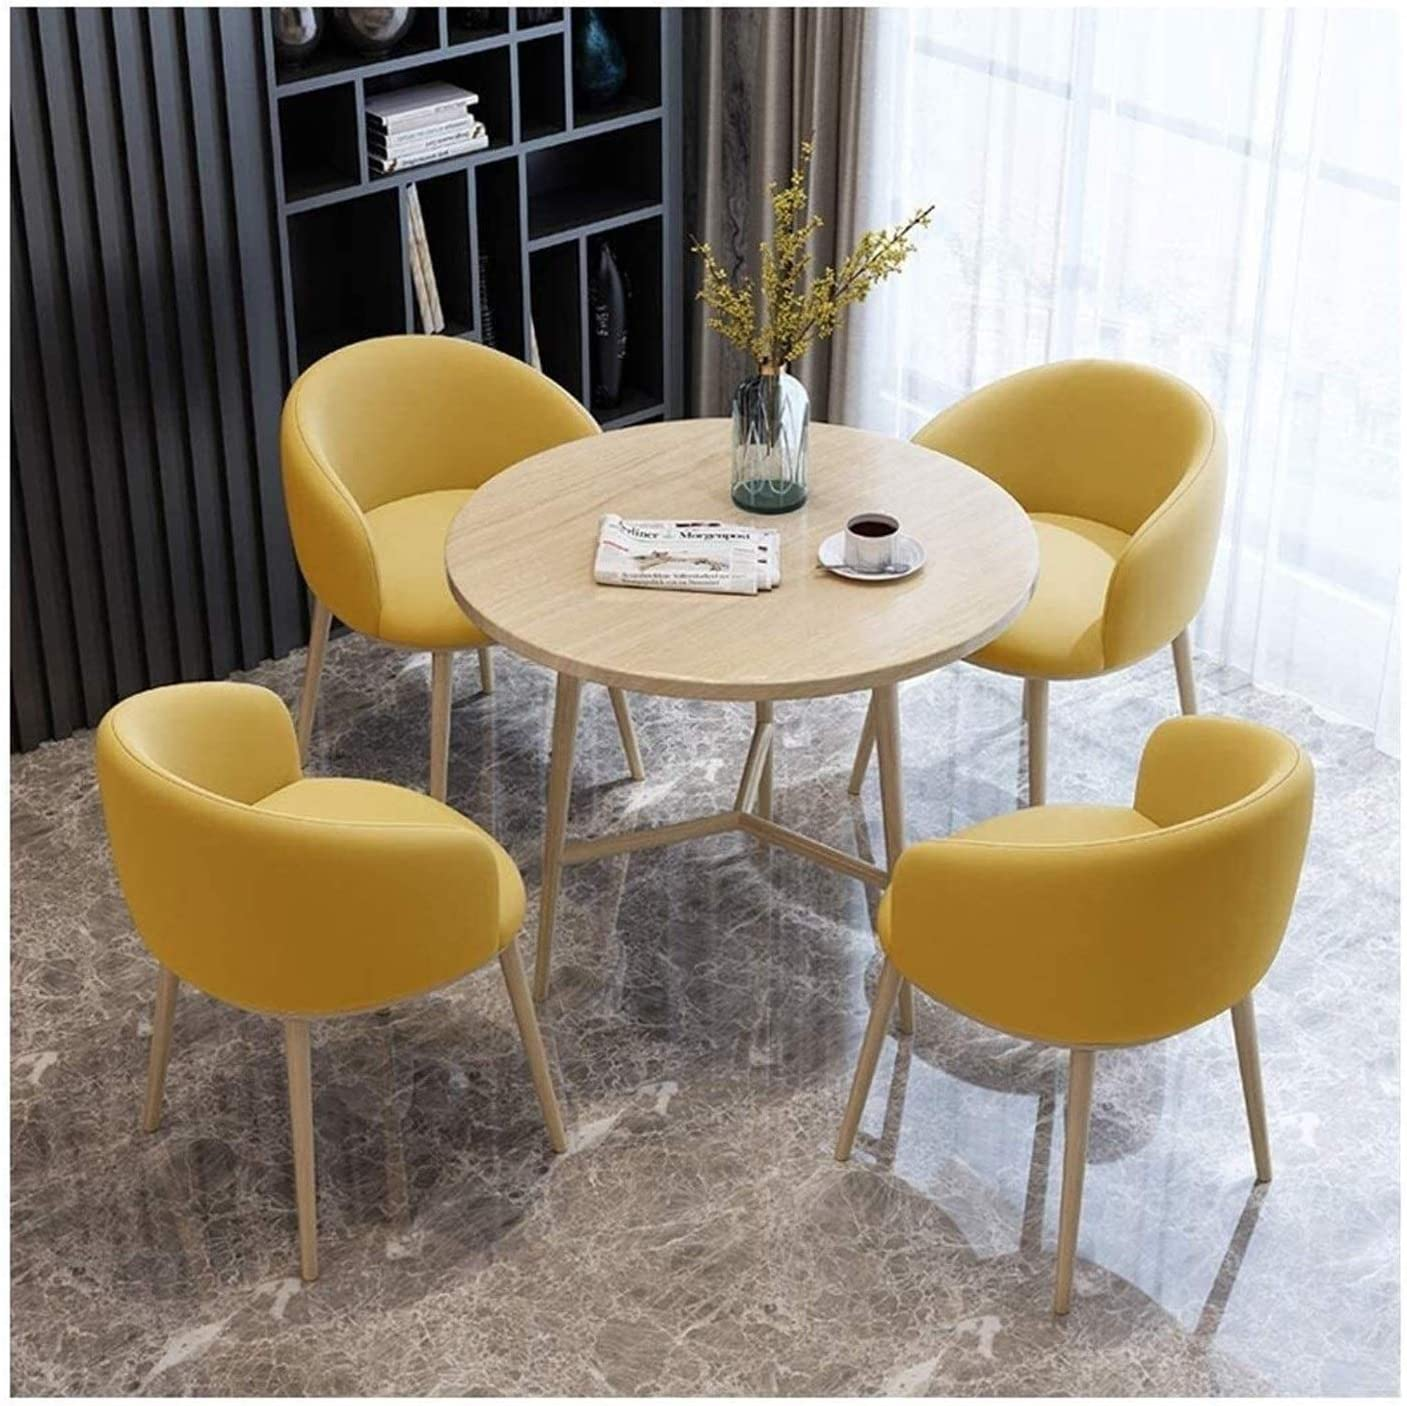 BUYT 40% OFF Cheap Sale Office Reception Room Club Low price Table and Set Chair Furniture Li